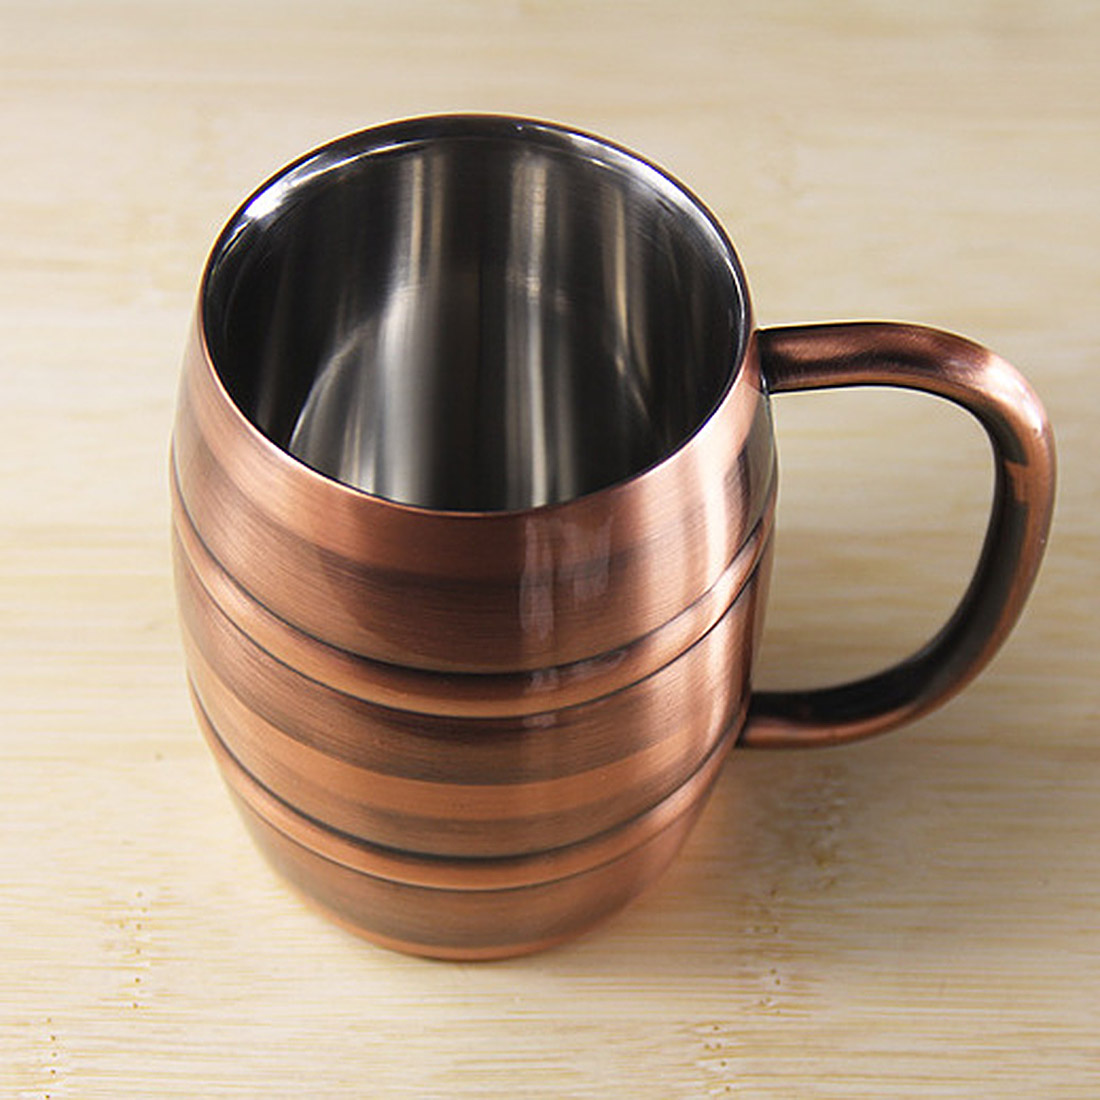 online buy wholesale copper mugs from china copper mugs wholesalers. Black Bedroom Furniture Sets. Home Design Ideas